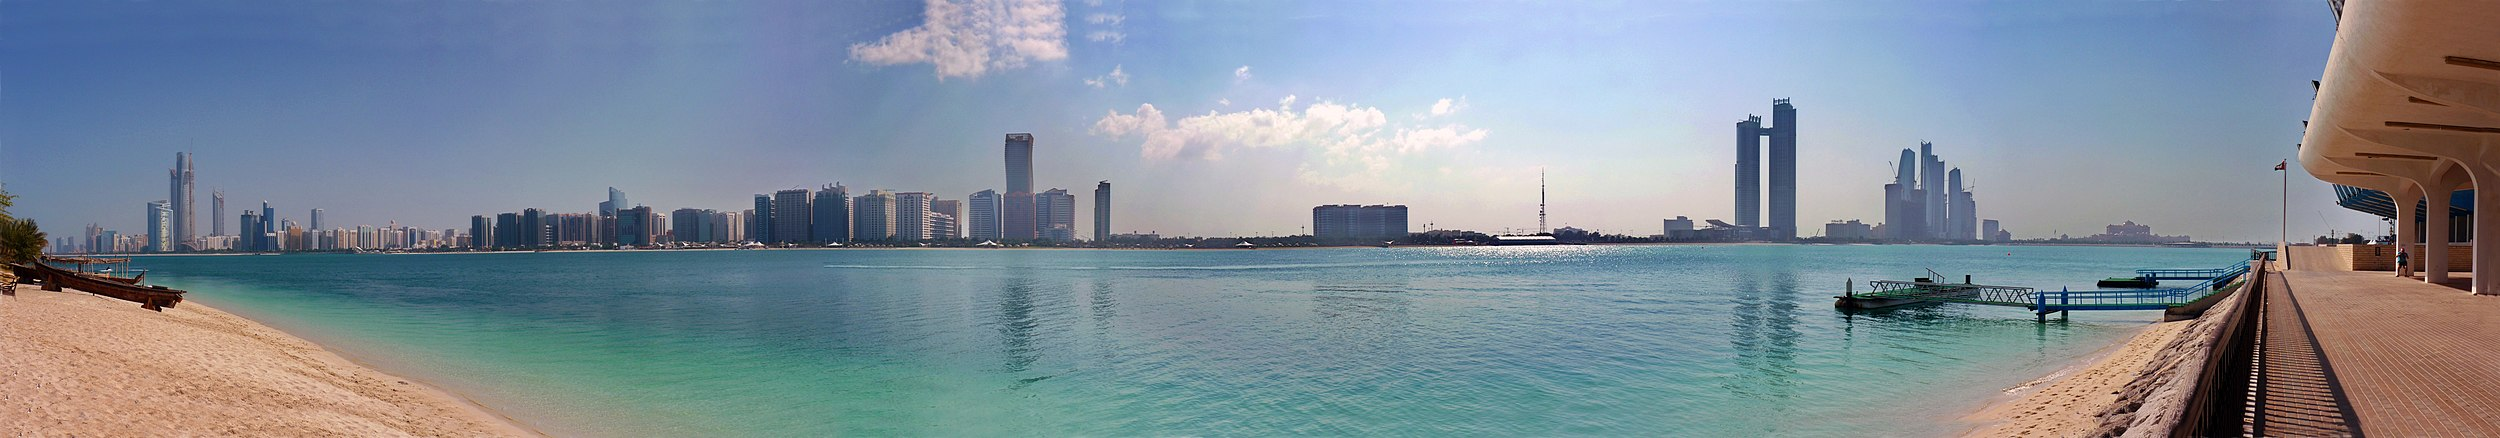 Panoramic view from Marina Village - Abu Dhabi.jpg